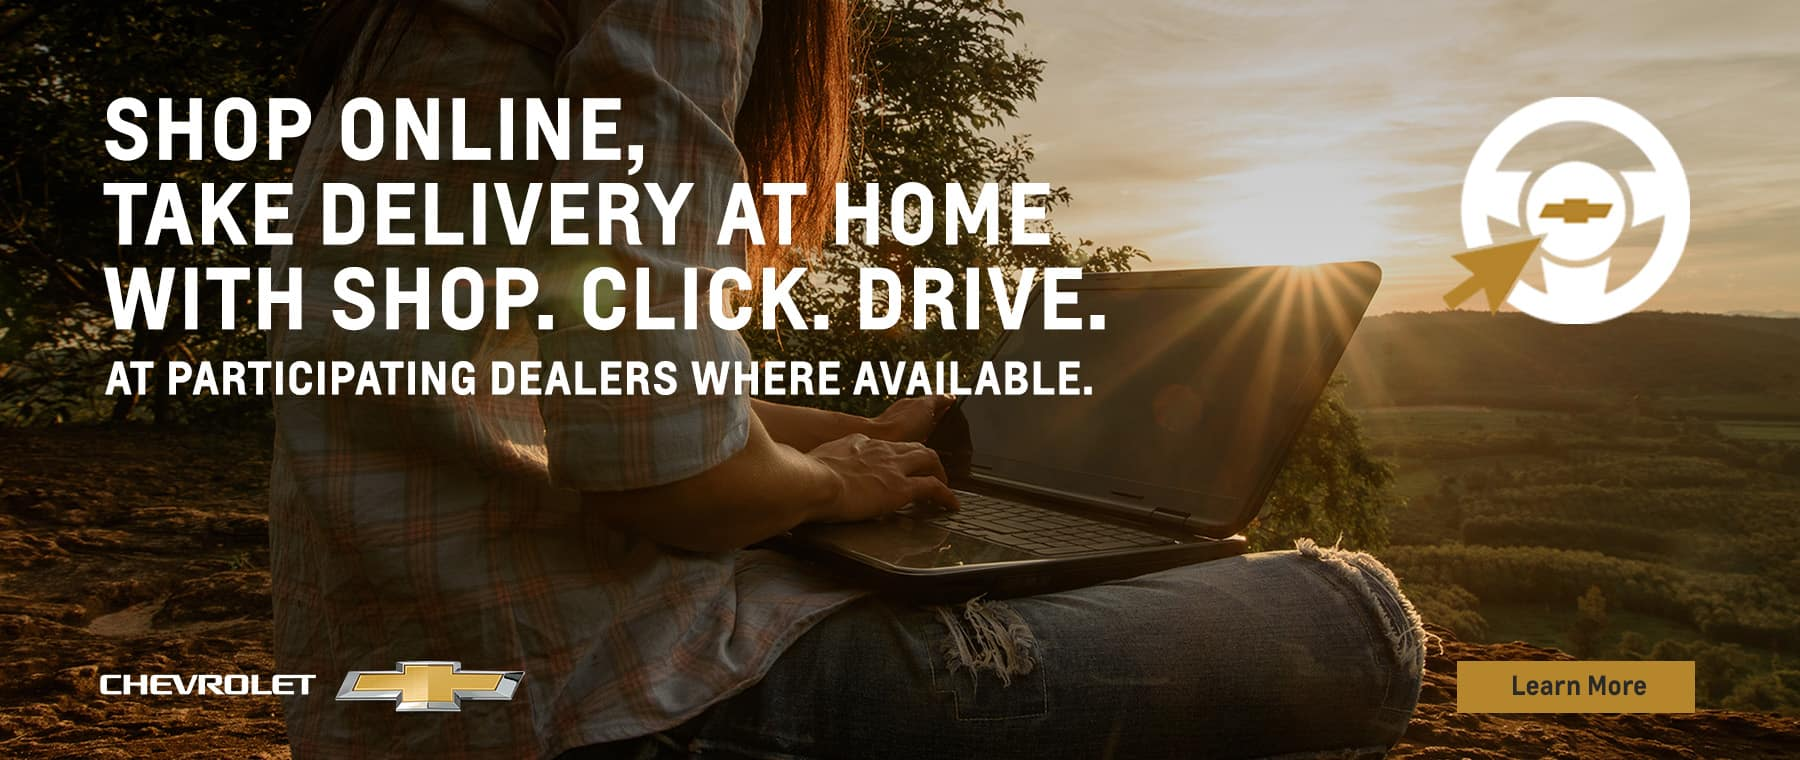 Learn more about Shop Click Drive